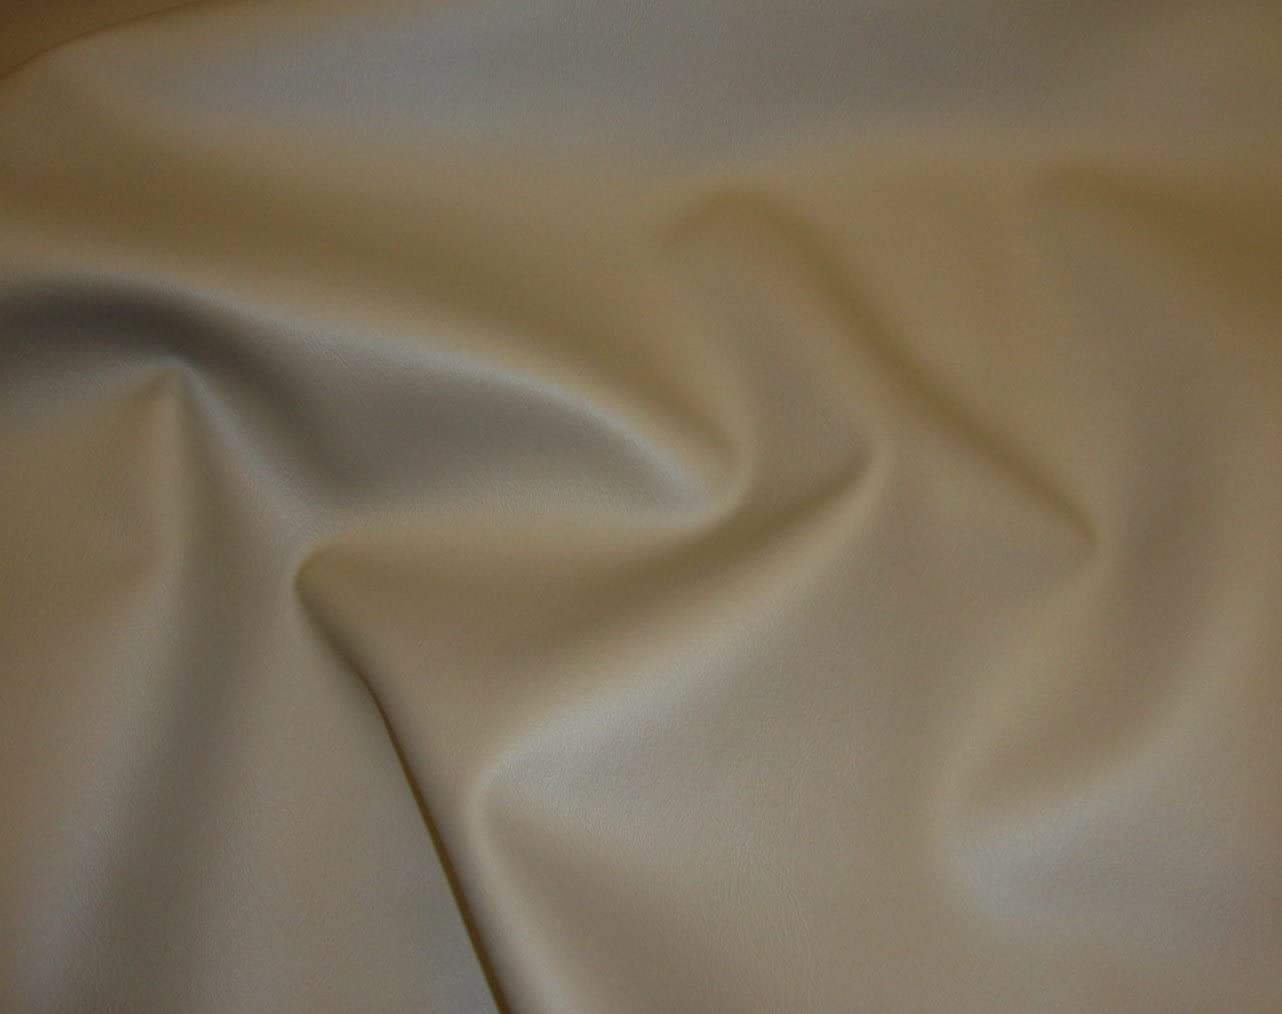 luvfabrics Khaki Contract Commercial Marine Grade Upholstery Vinyls Faux Leather Fabric Per Yard Shipped Rolled